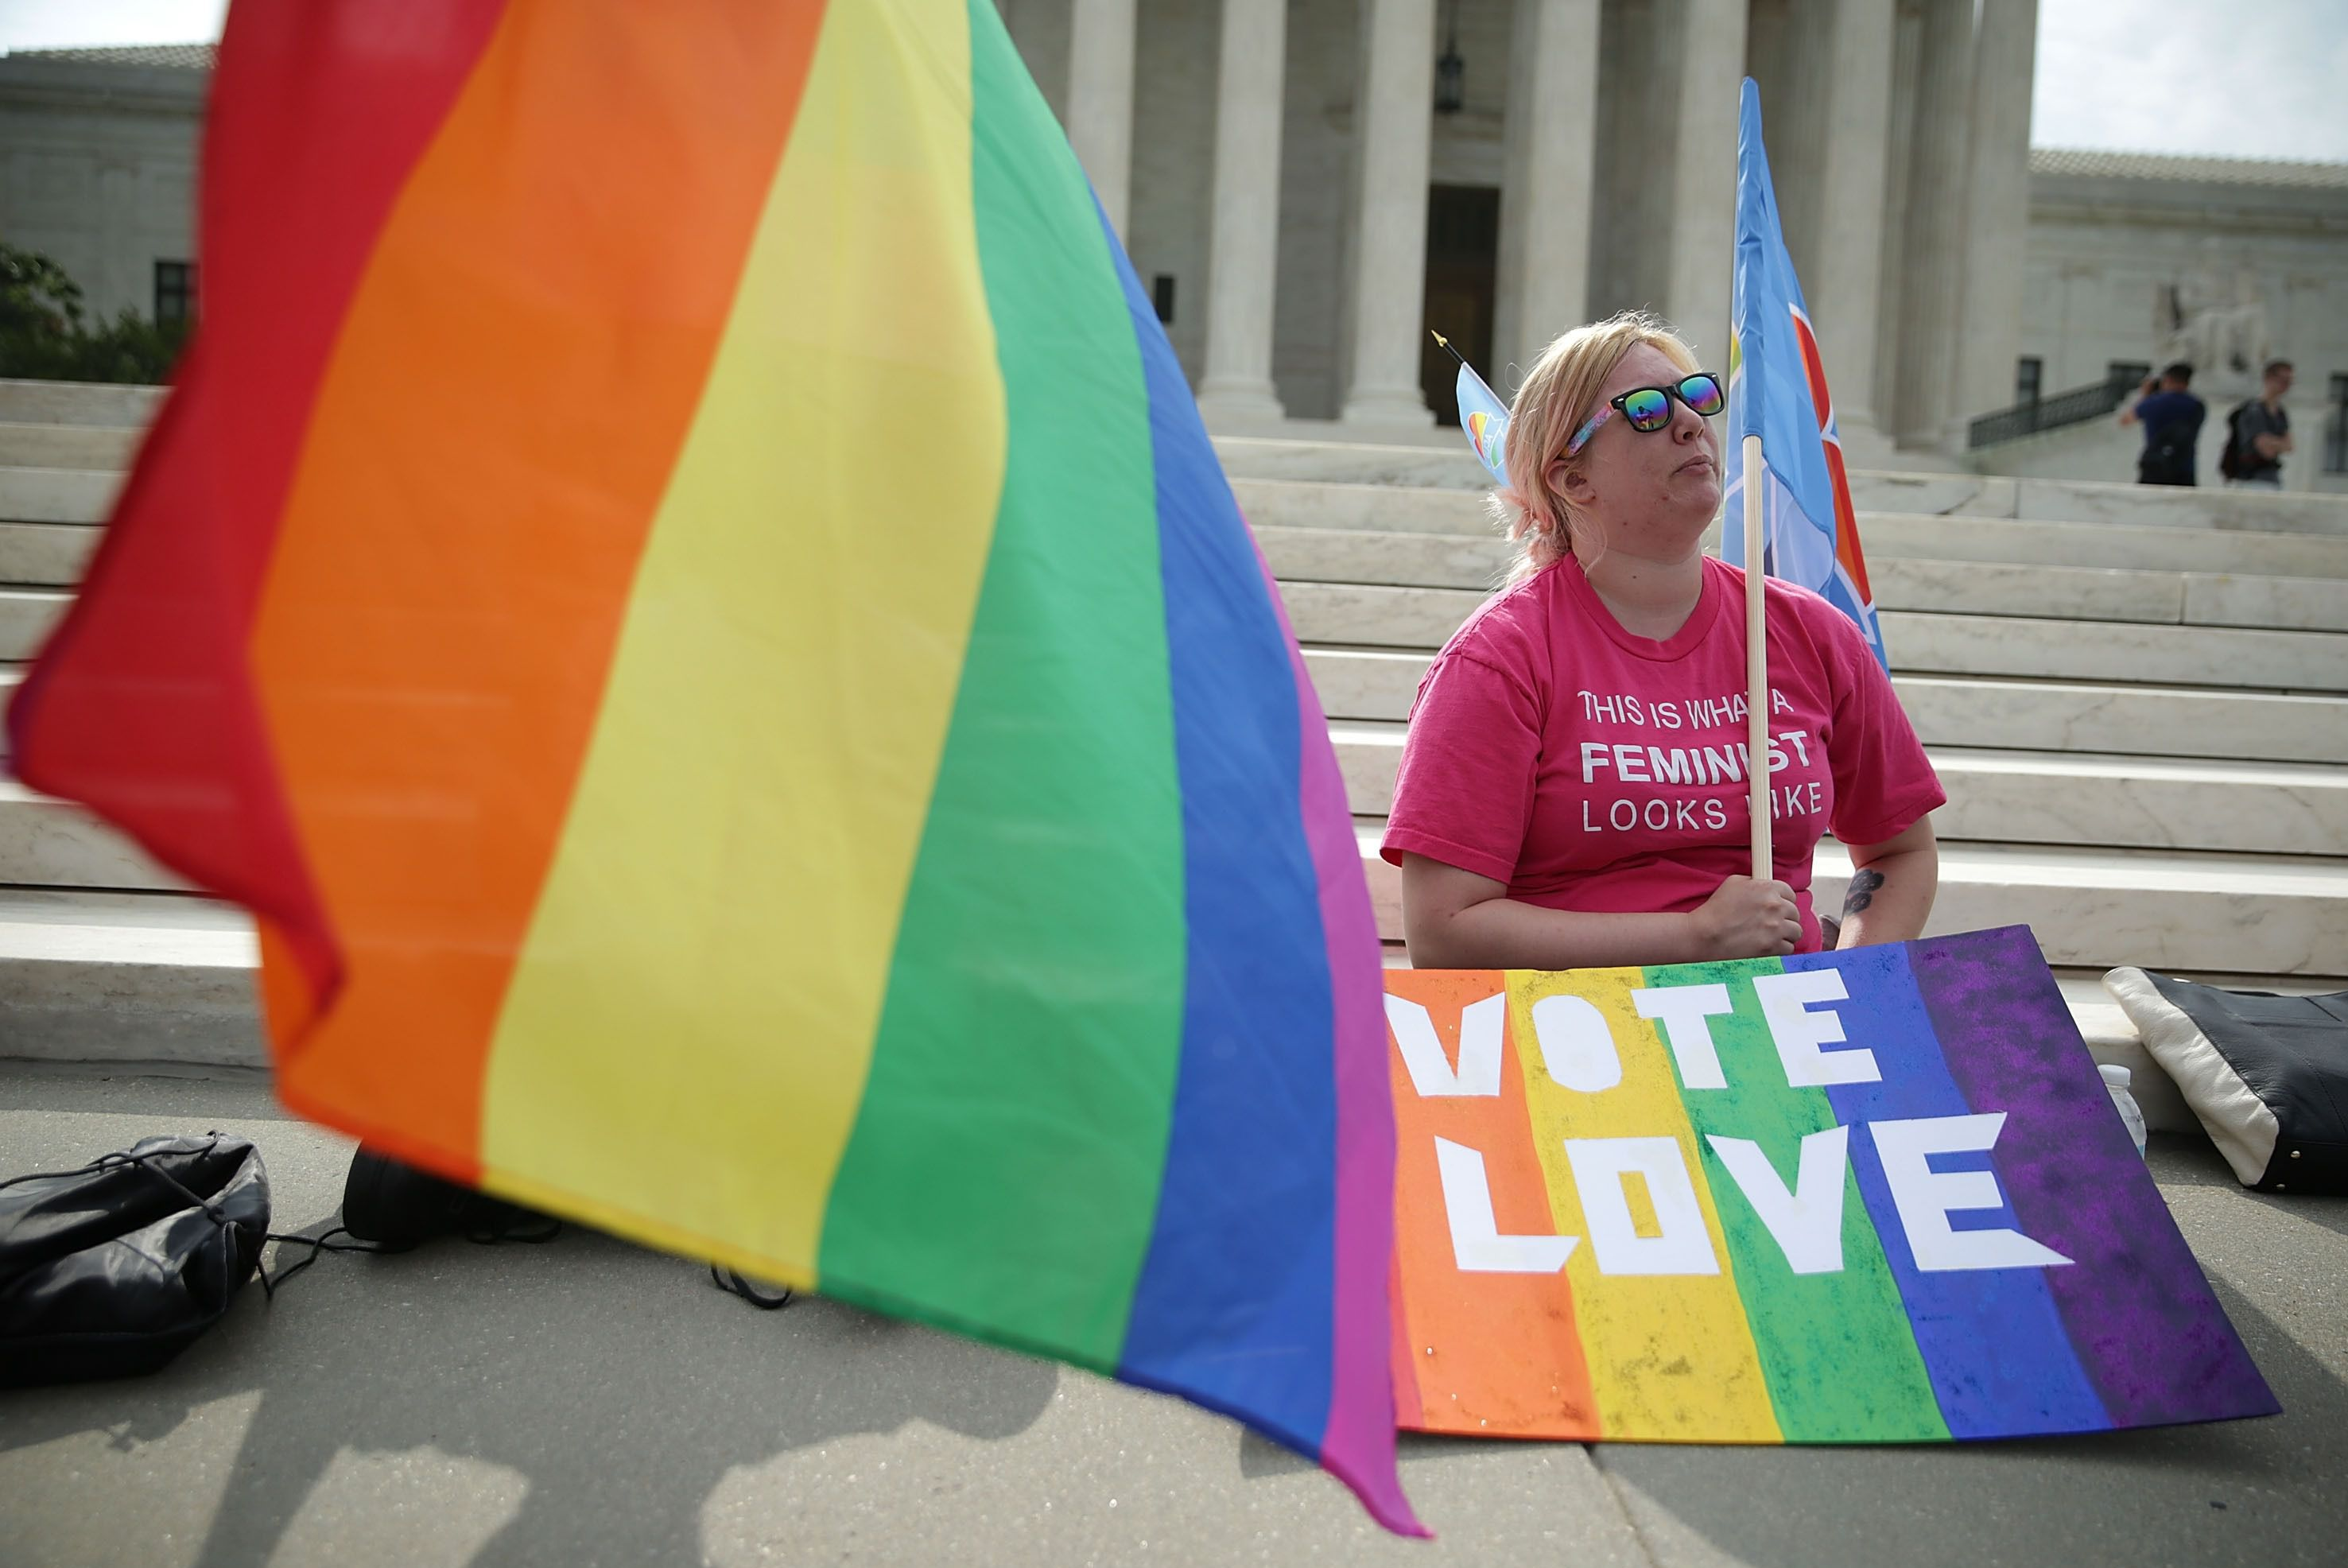 What 2 principles of democracy connect to gay marriage ?